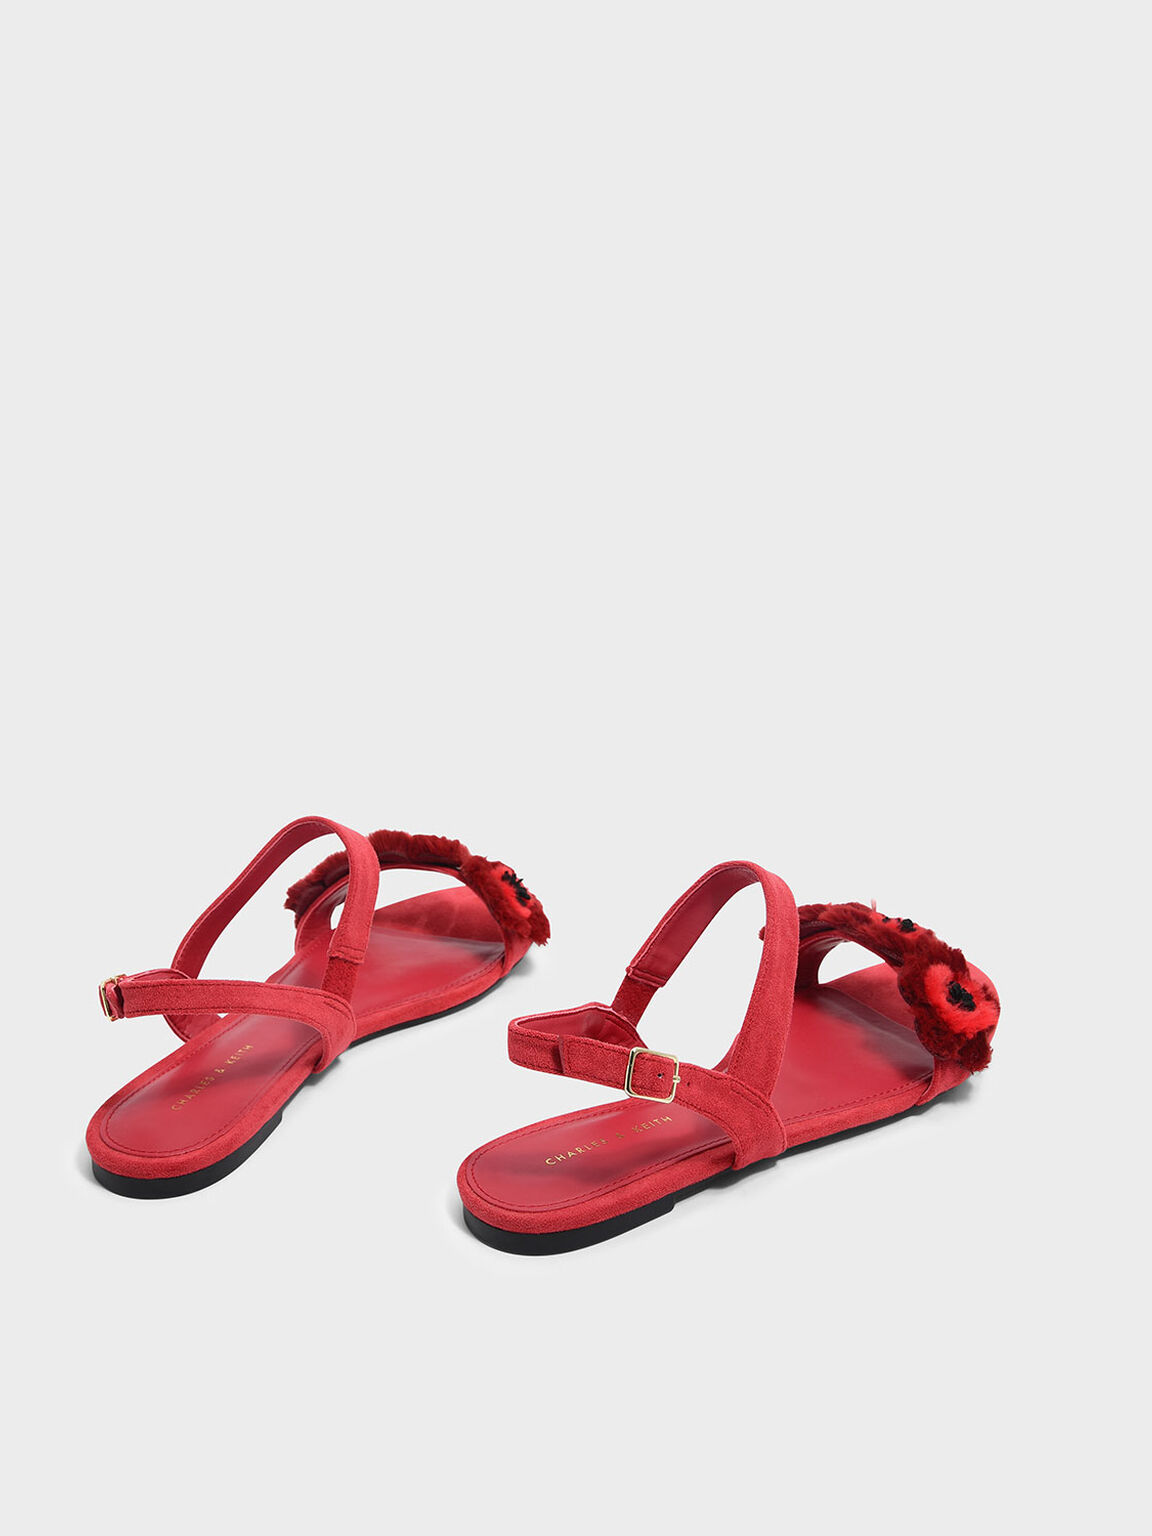 Furry Floral Detail Sandals, Red, hi-res